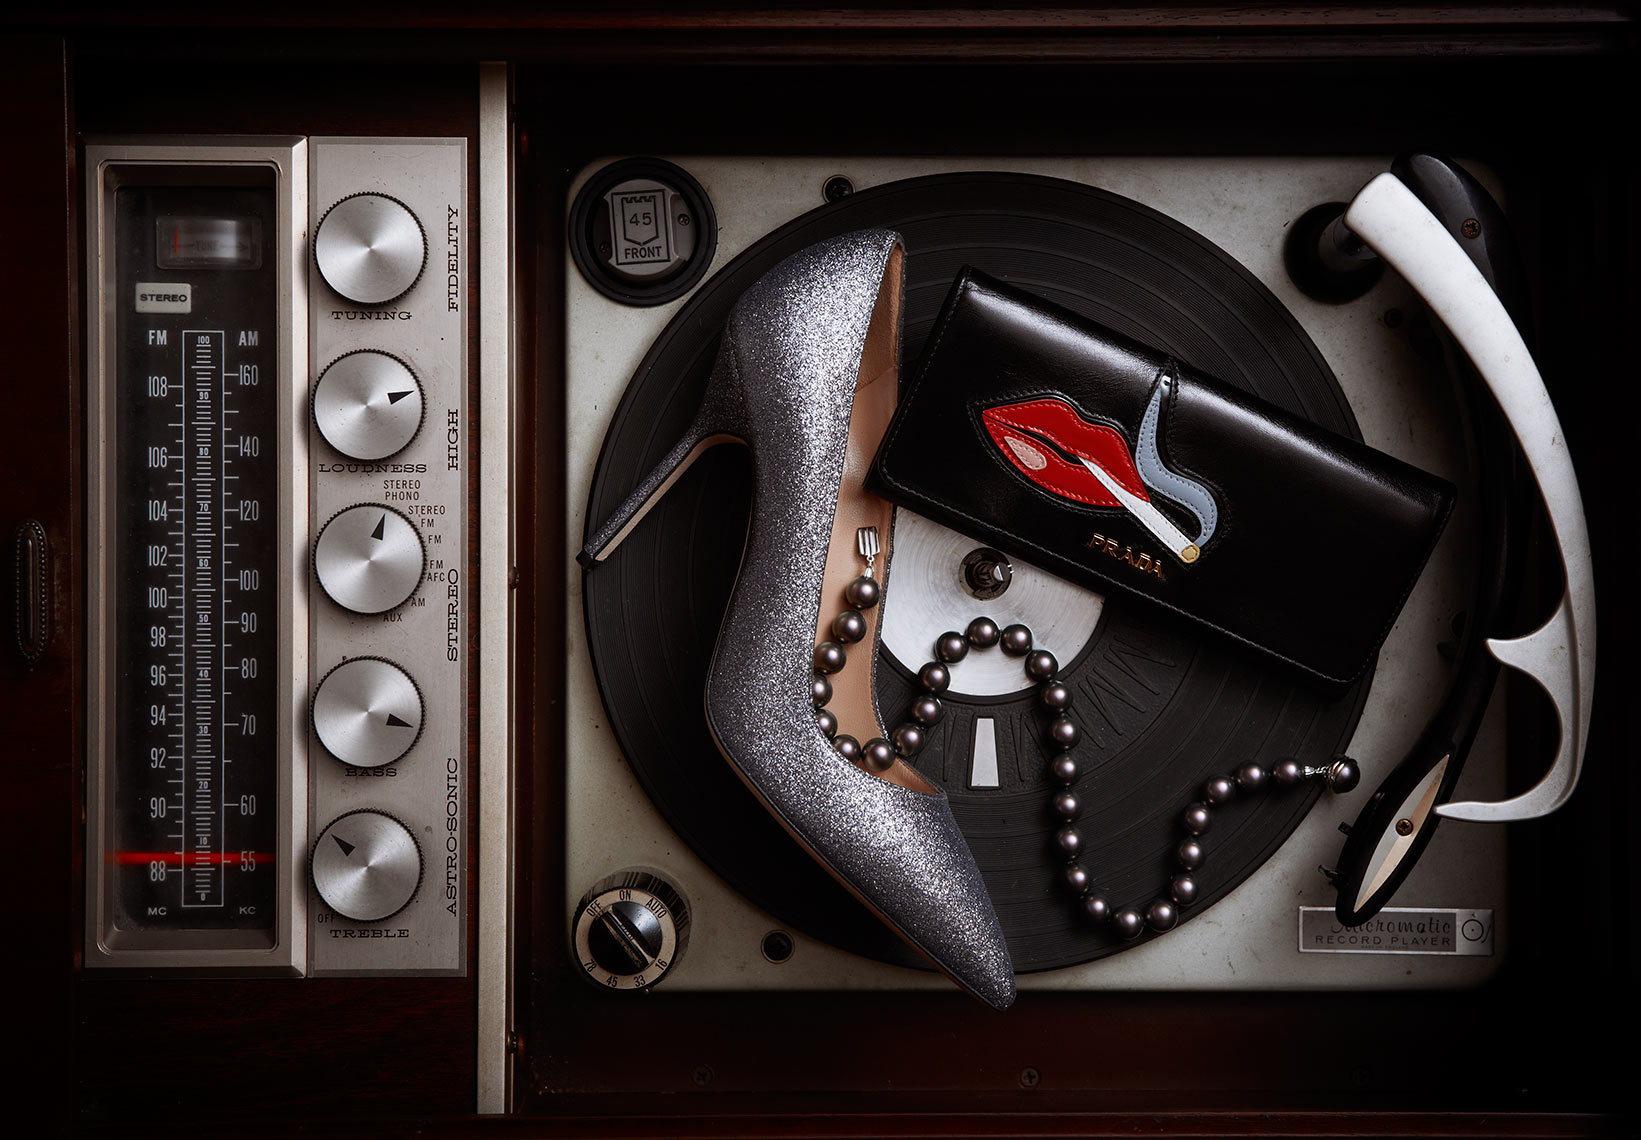 Still life photograph on old record player featuring Prada